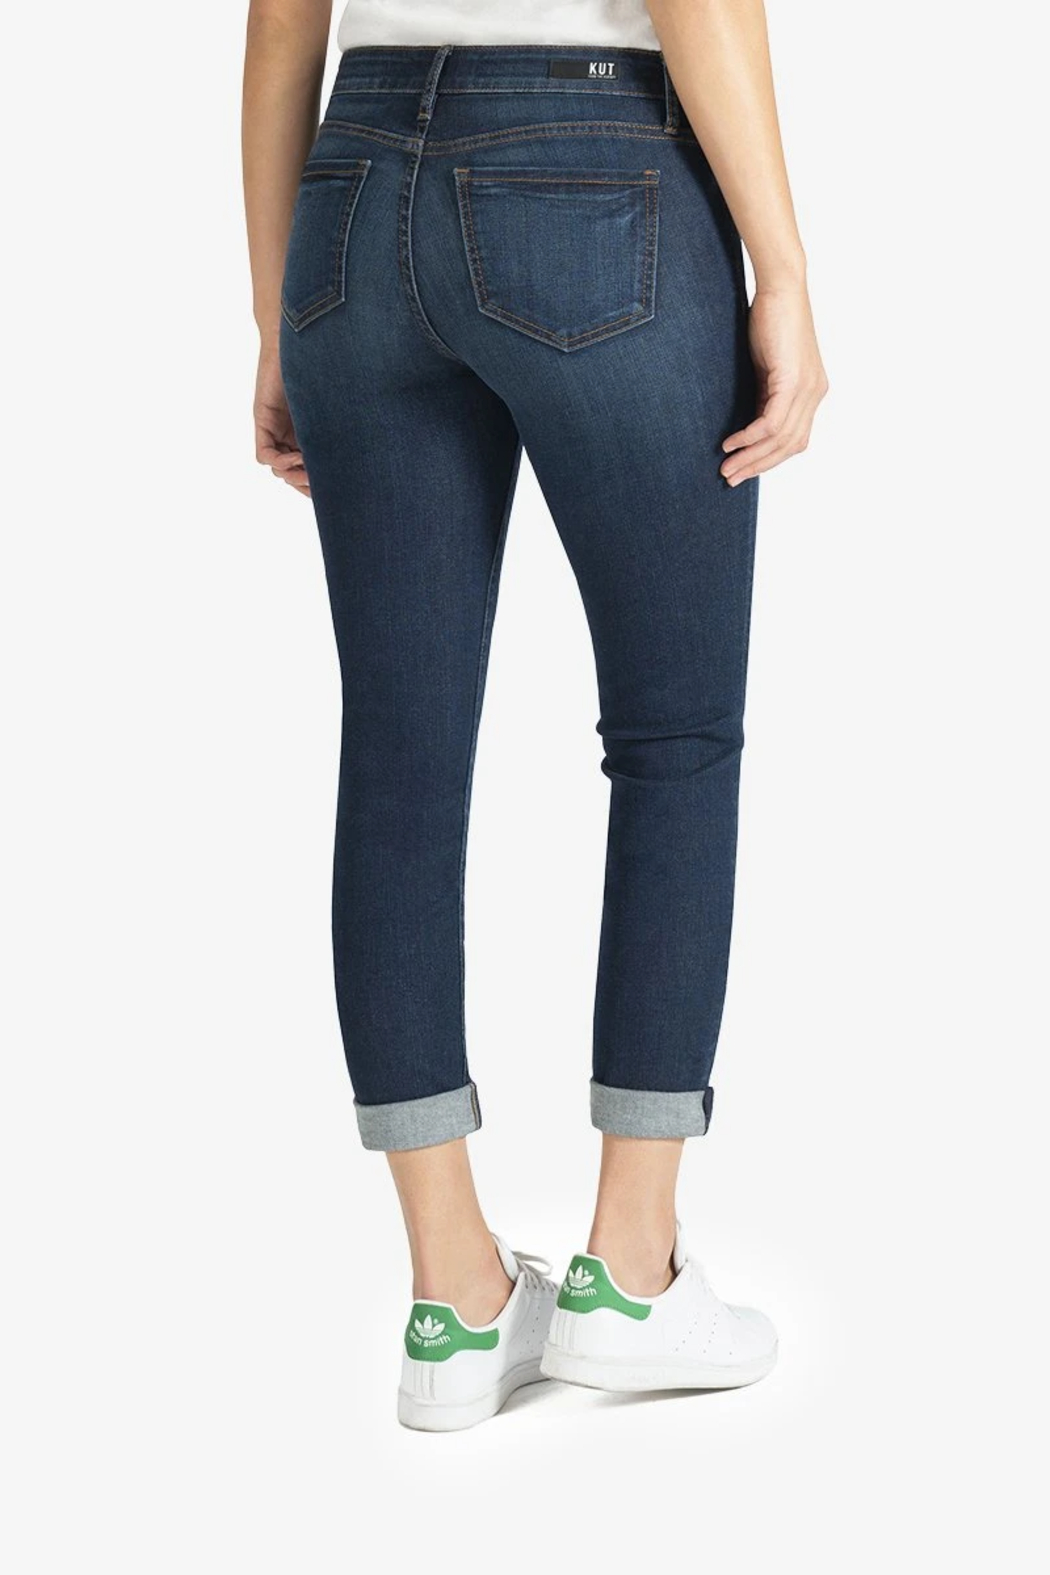 Kut from the Kloth Catherine Boyfriend Jeans - Side Cropped Image